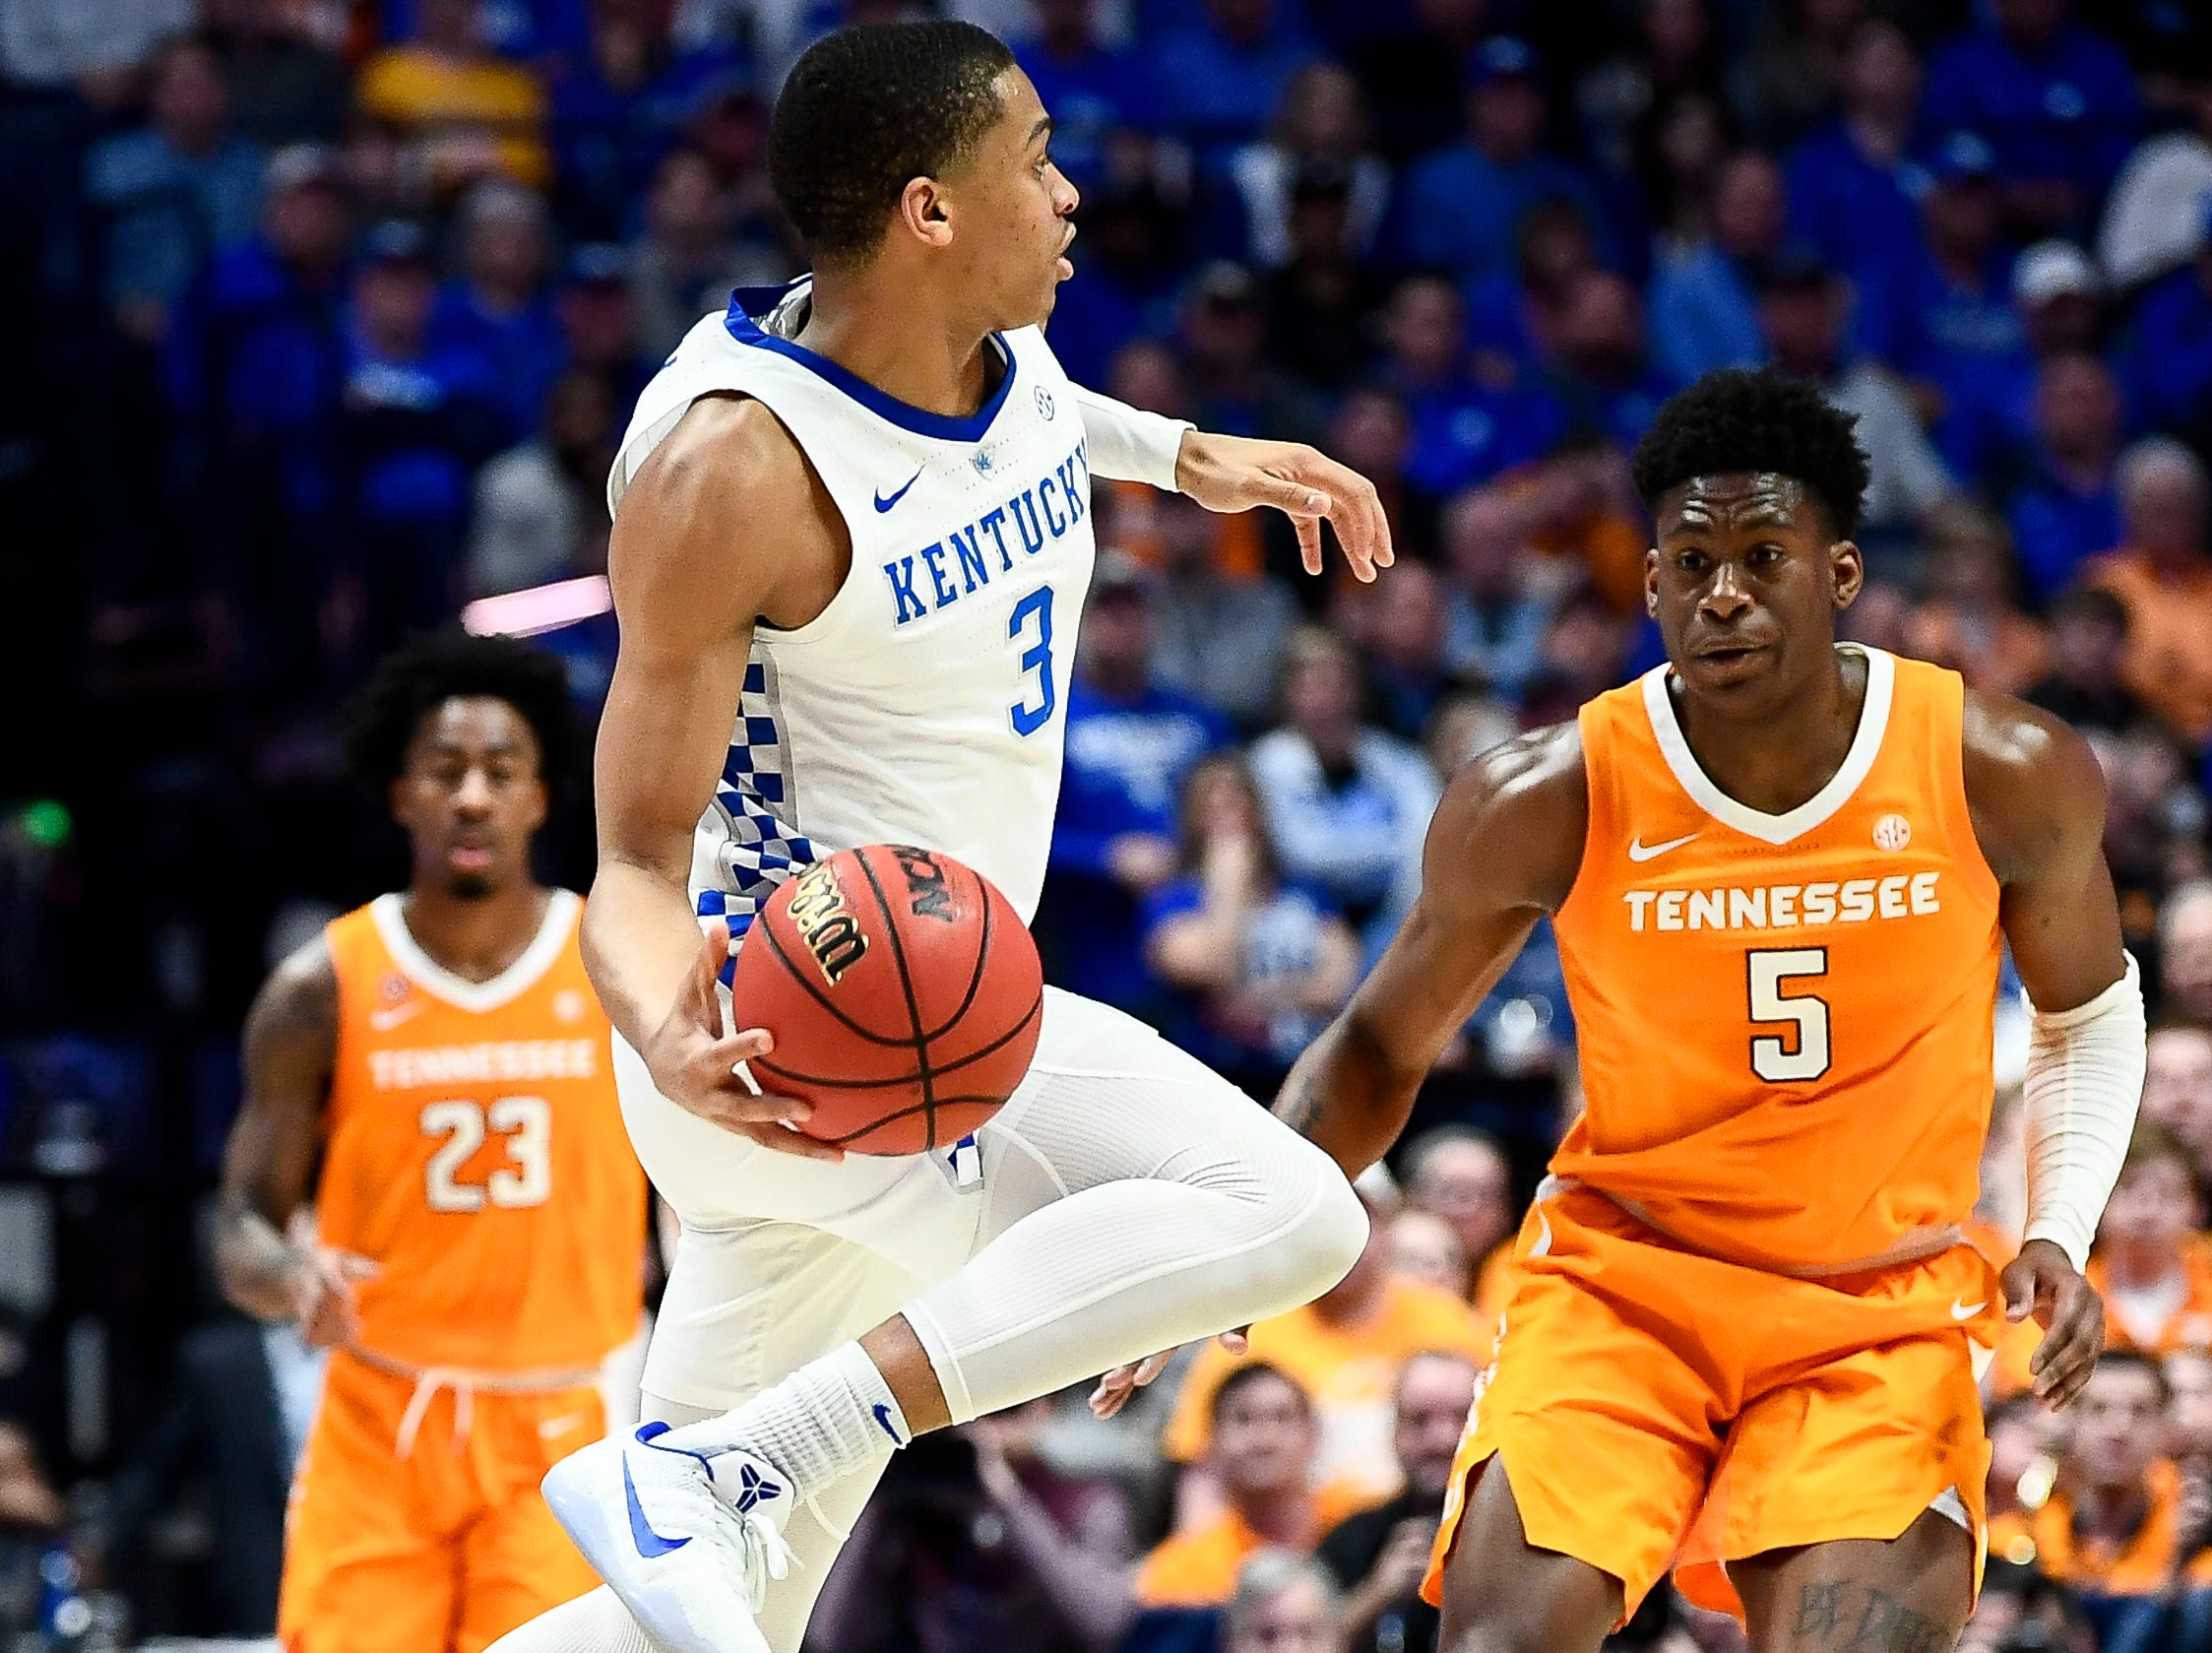 Kentucky guard Keldon Johnson (3) passes past Tennessee guard Admiral Schofield (5) during the first half of the SEC Men's Basketball Tournament semifinal game at Bridgestone Arena in Nashville, Tenn., Saturday, March 16, 2019.